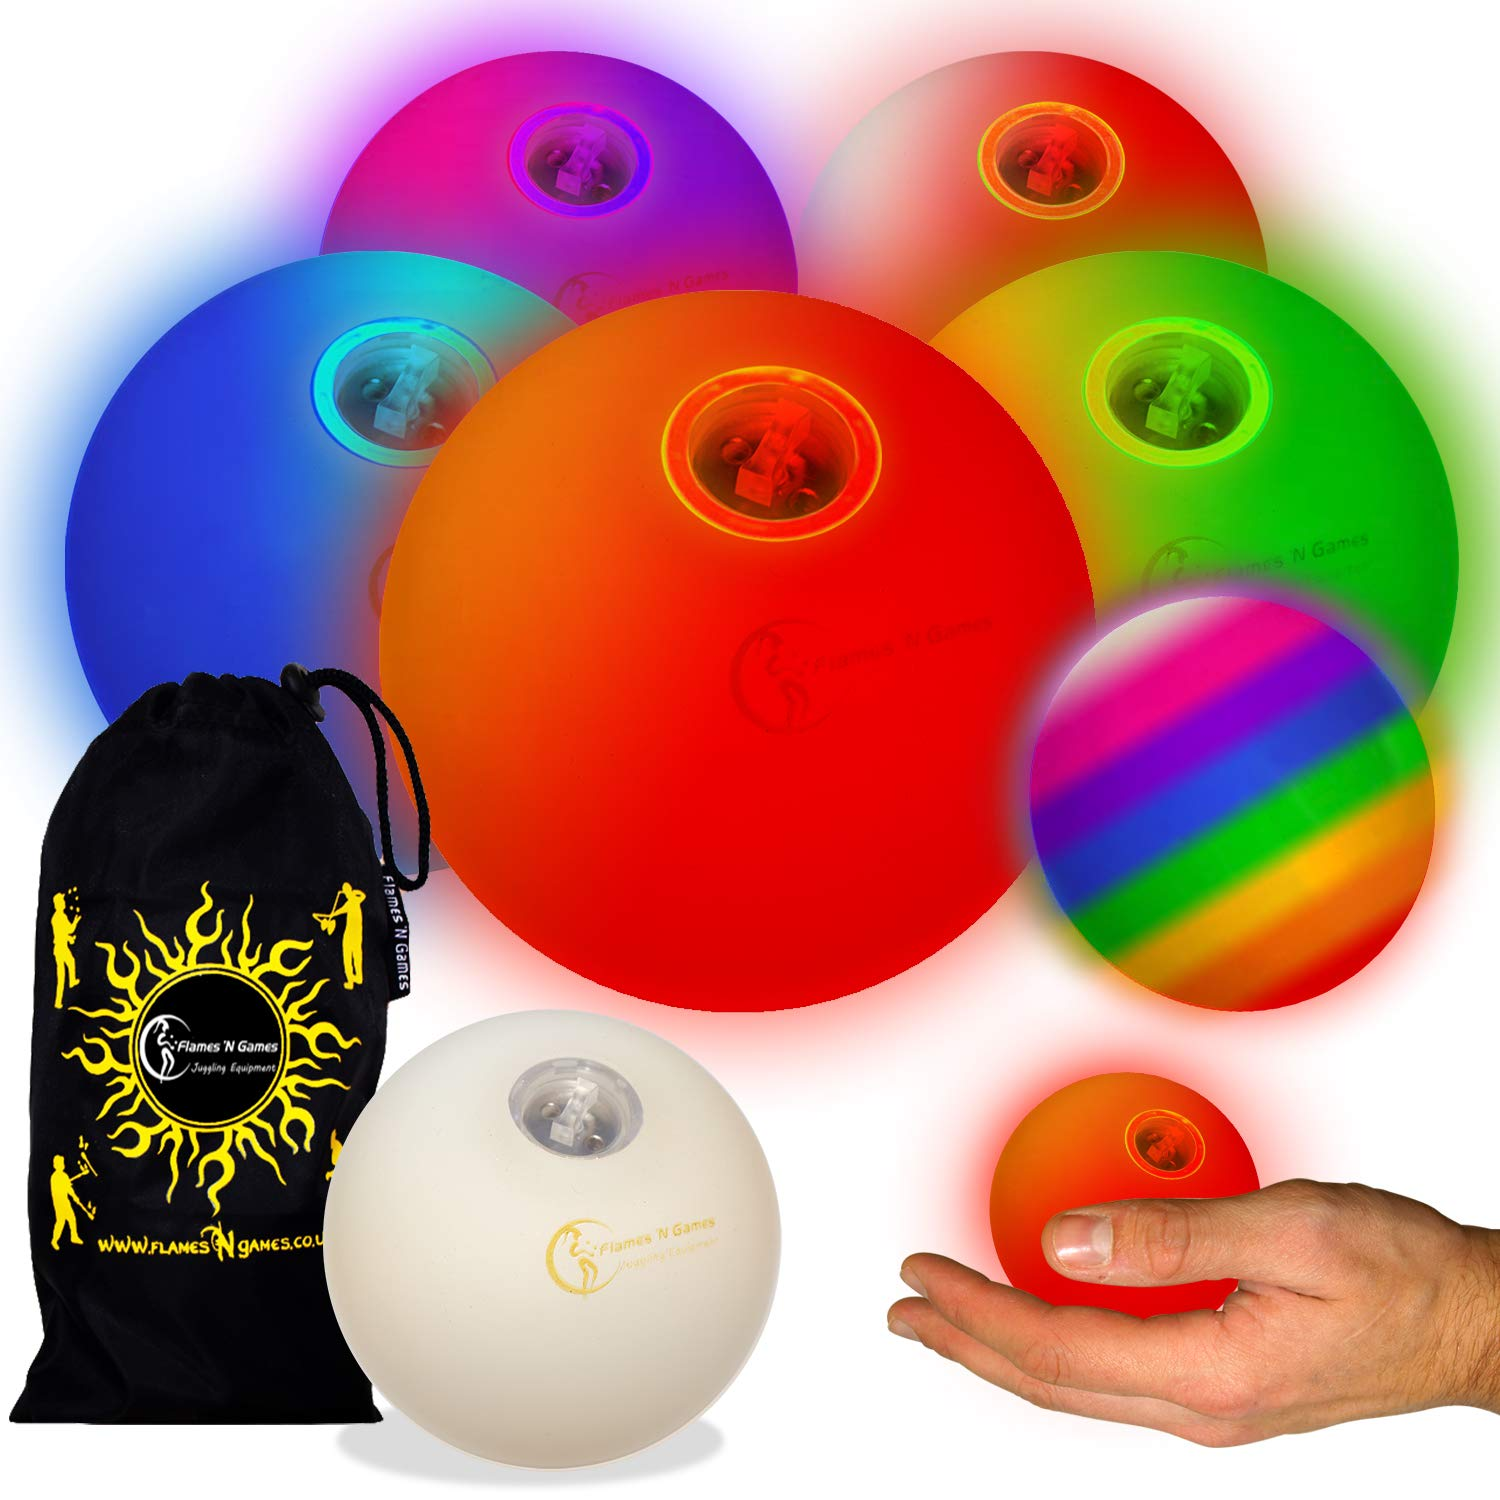 Flames N Games Pro LED Glow Juggling Balls 5X (Slow Fade Rainbow Effect) Ultra Bright Battery Powered Glow LED Juggling Ball Set with Travel Bag. (Set of 5) by Flames N Games Juggling Ball Sets (Image #1)